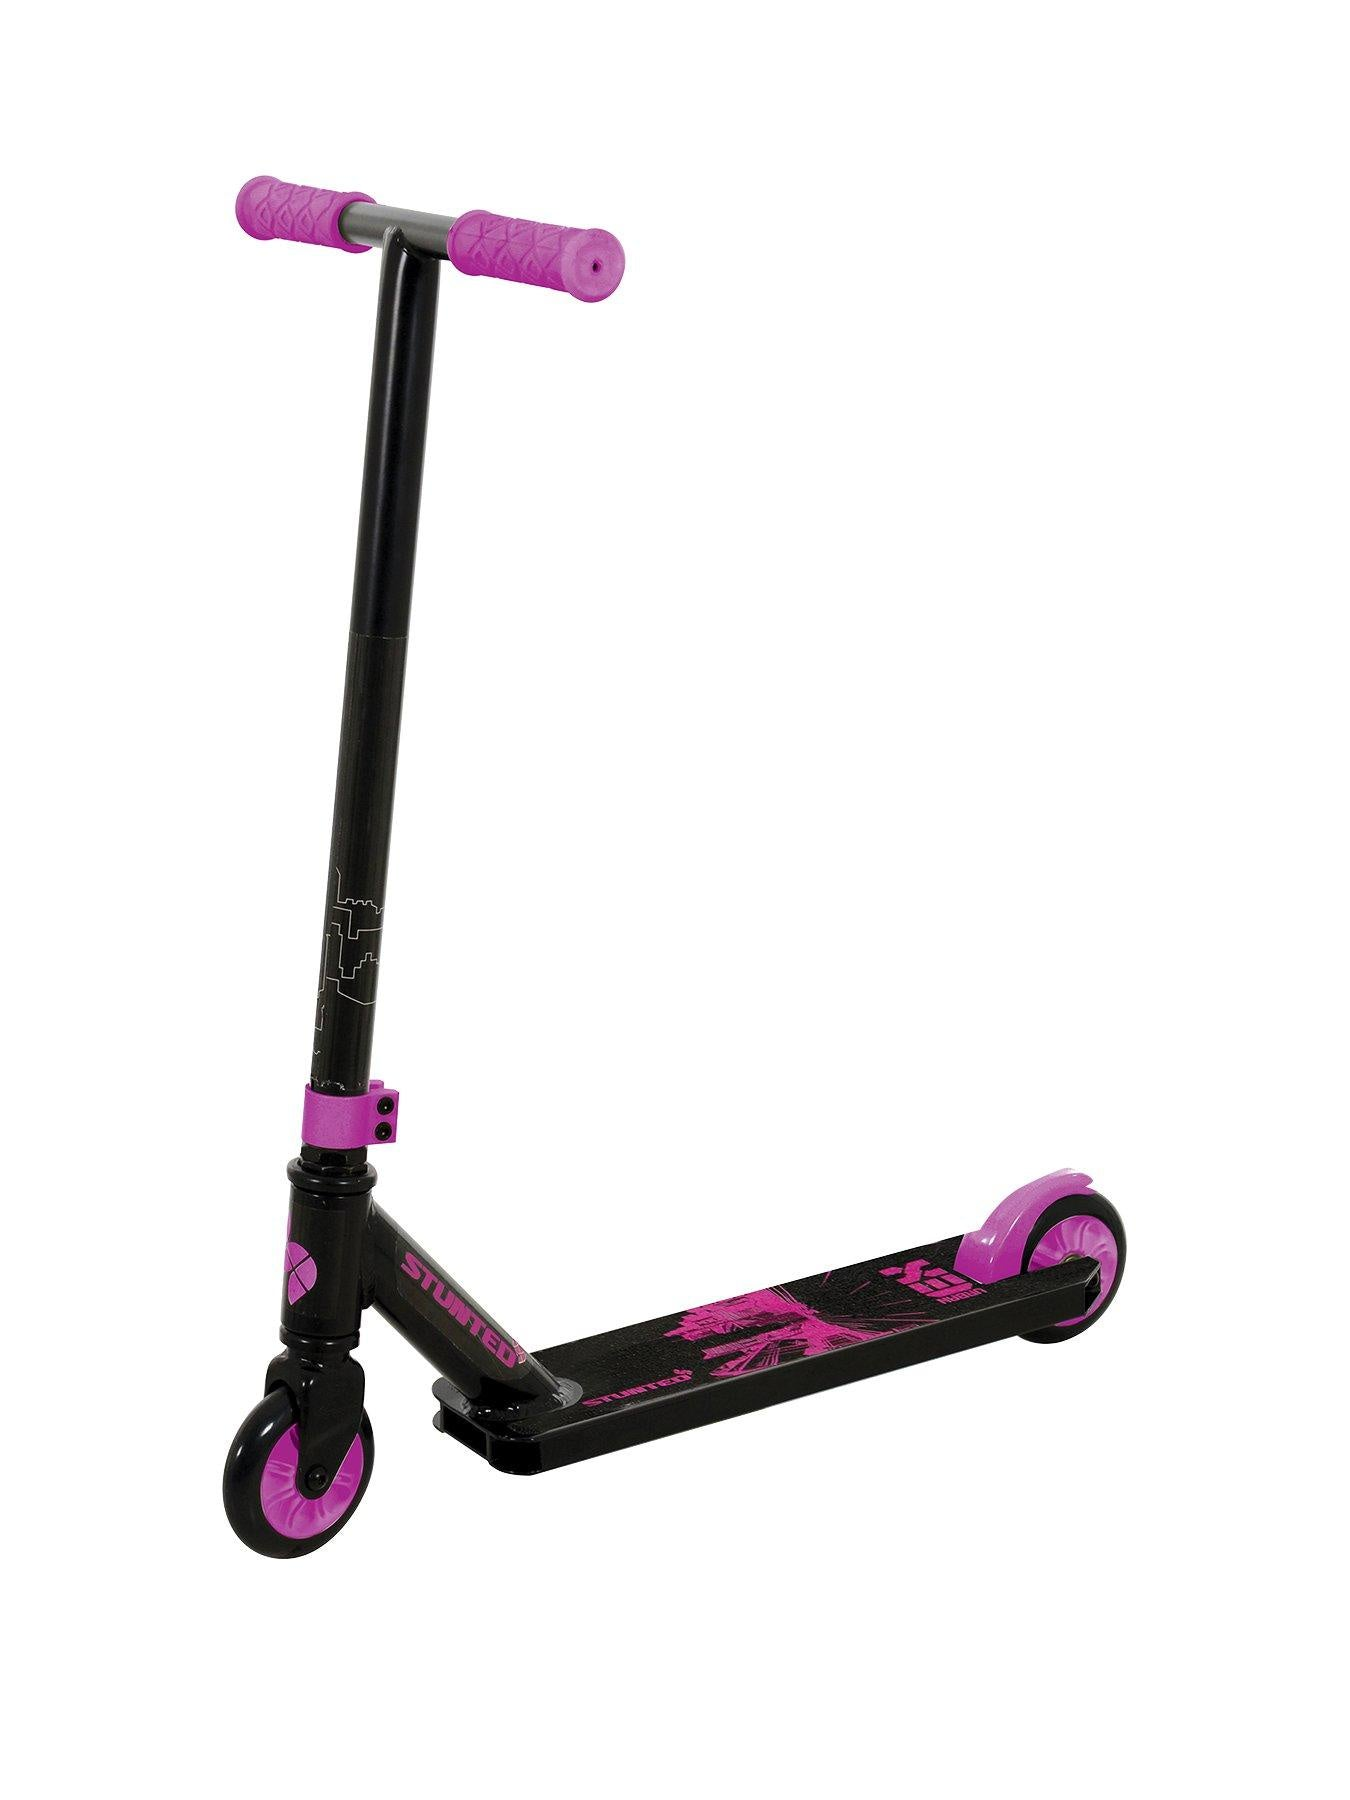 Stunted Urban EX Stunt Scooter Purple